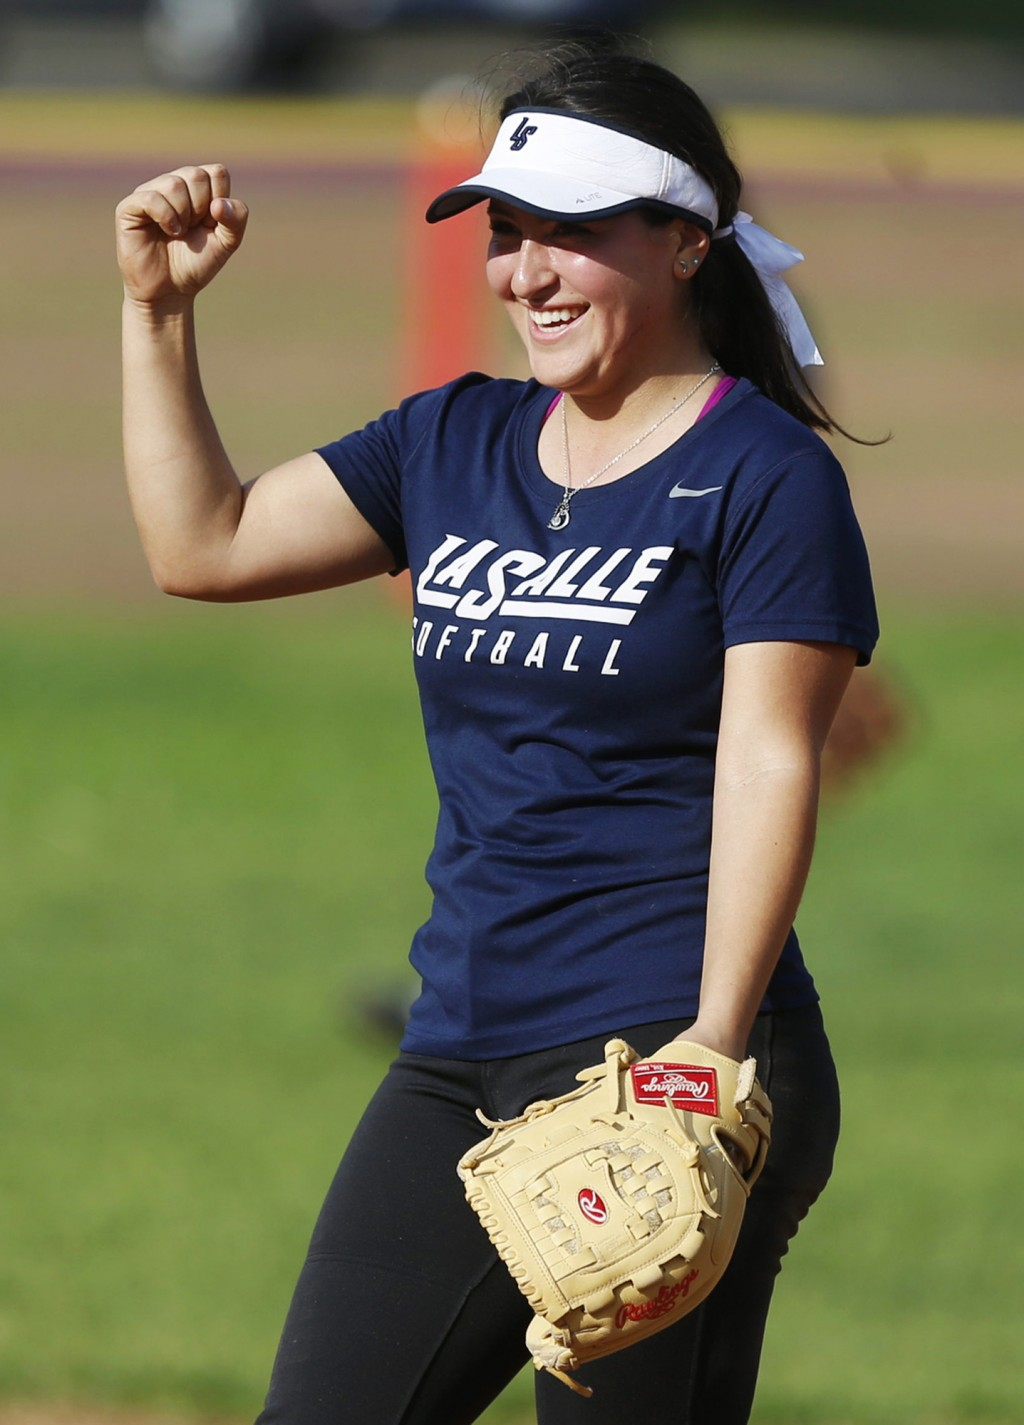 In this Monday, March 12, 2018, photo Katrina Yuzefpolsky celebrates during practice with her La Salle varsity softball team in Pasadena, Calif. Yuzef